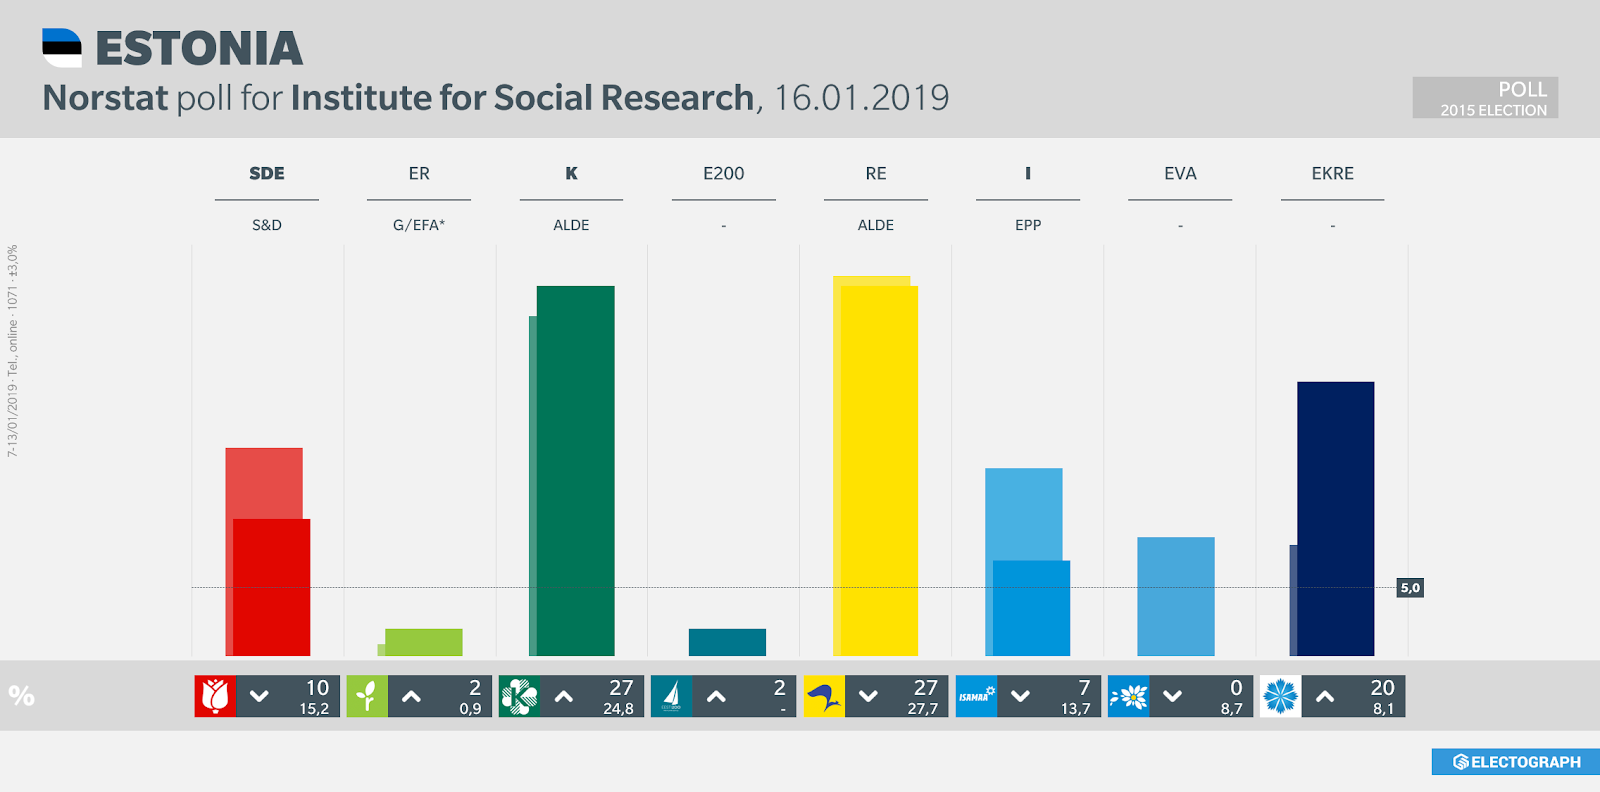 ESTONIA: Norstat poll chart for Institute for Social Research, 16 January 2019